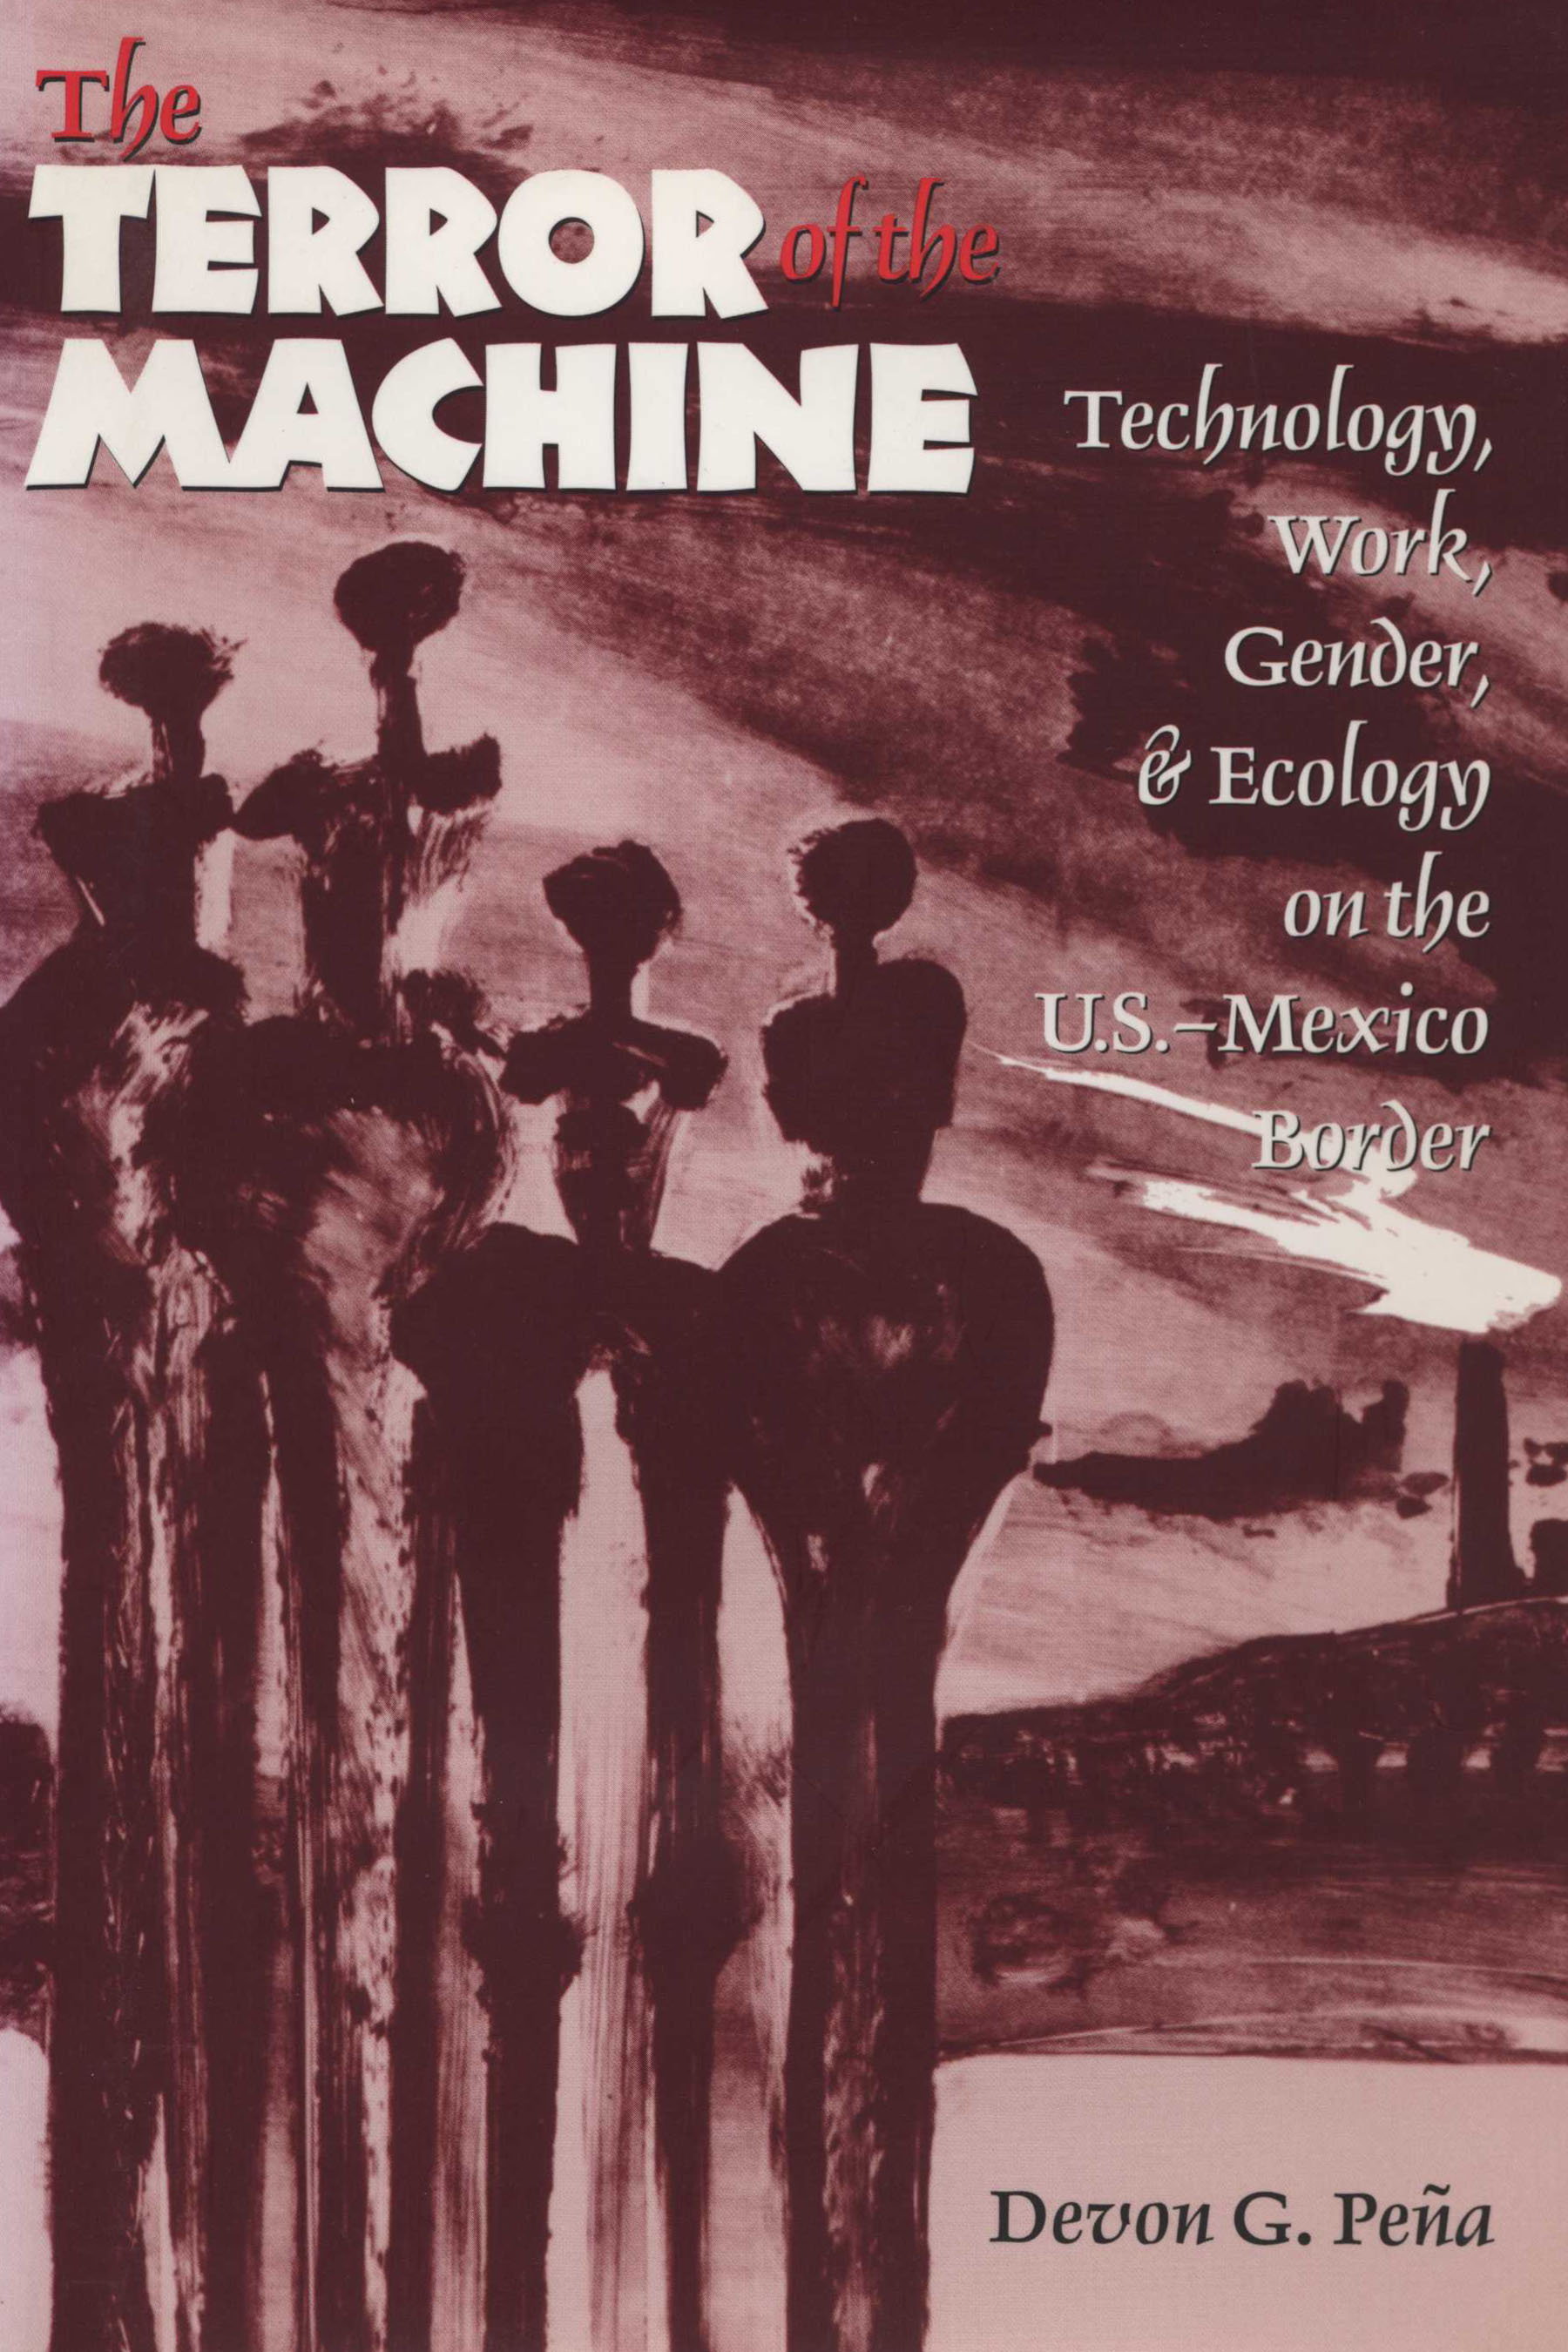 Cover of The Terror of the Machine